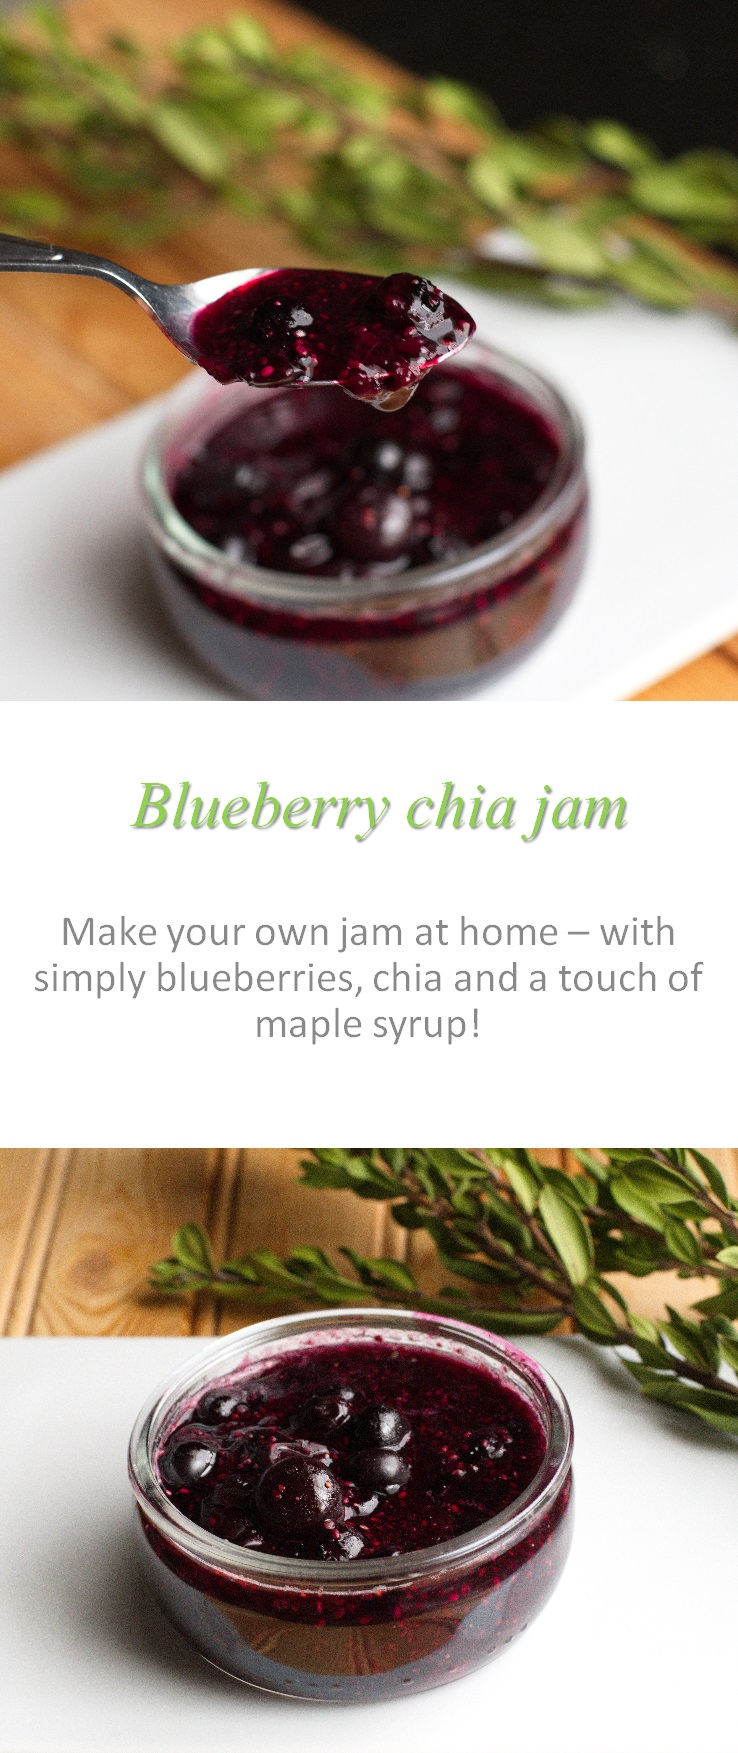 how to make blueberry jam at home